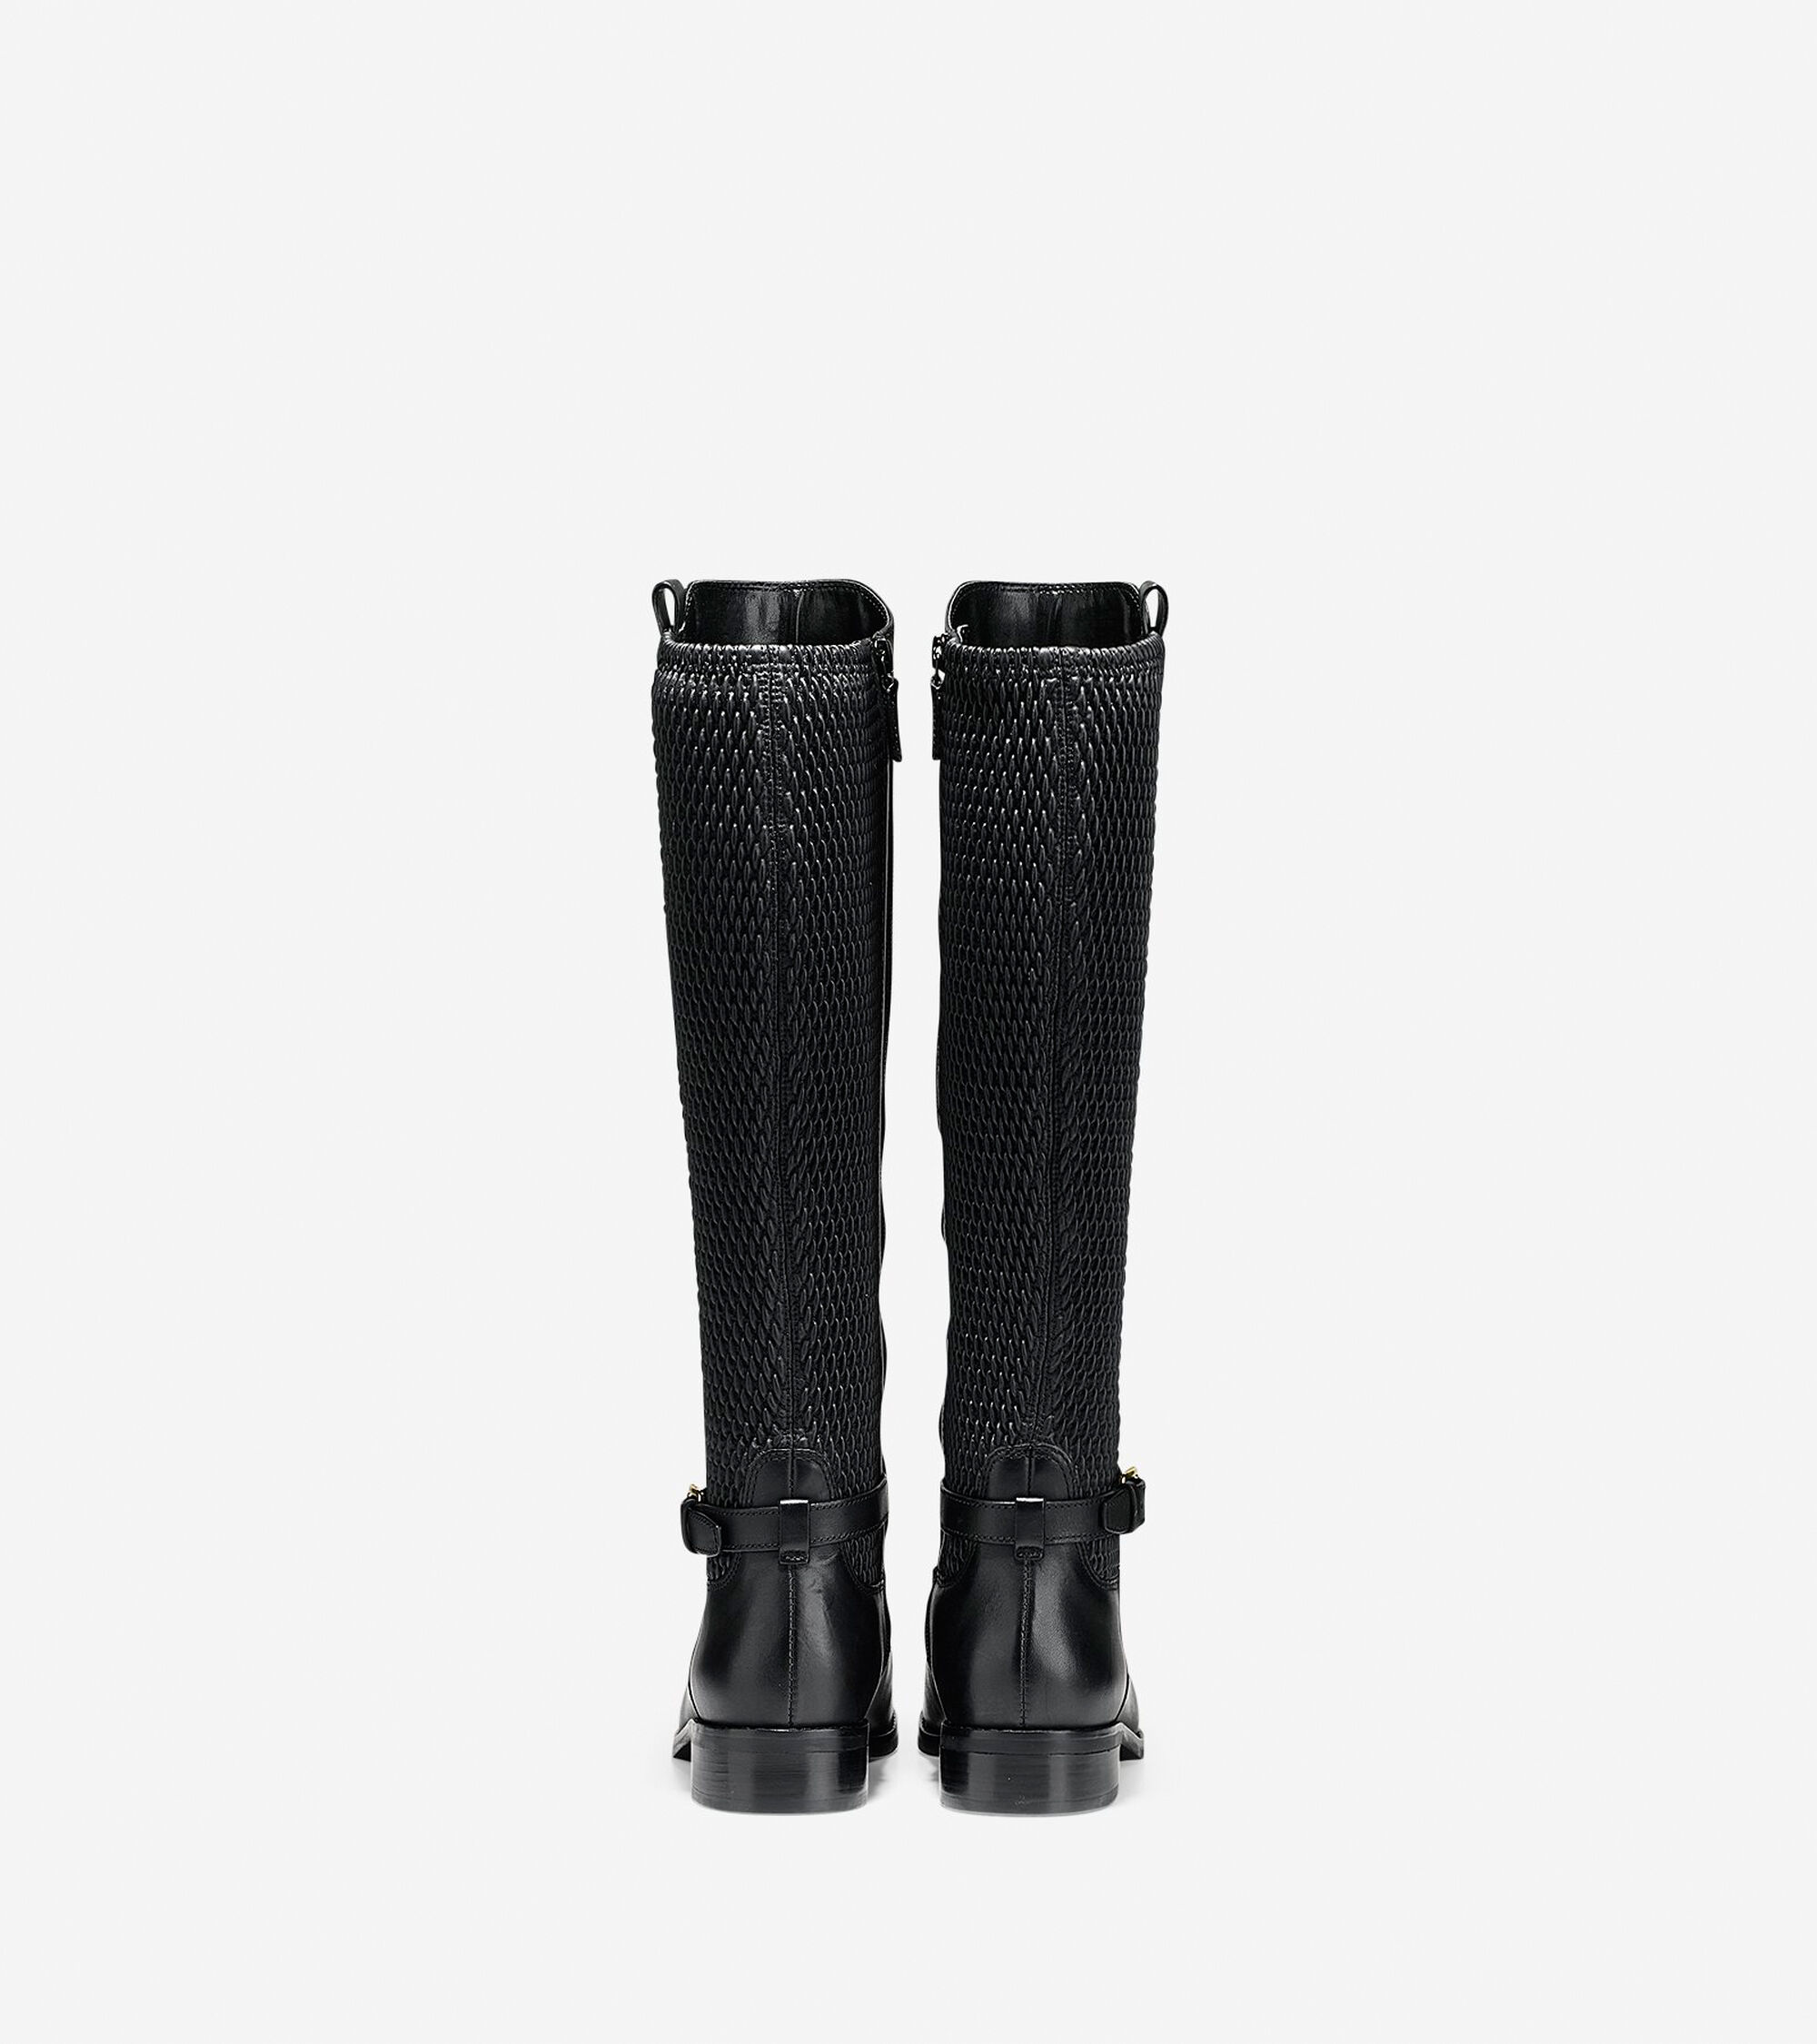 c9cce8e51c40 Women s Galina Boots in Black Leather